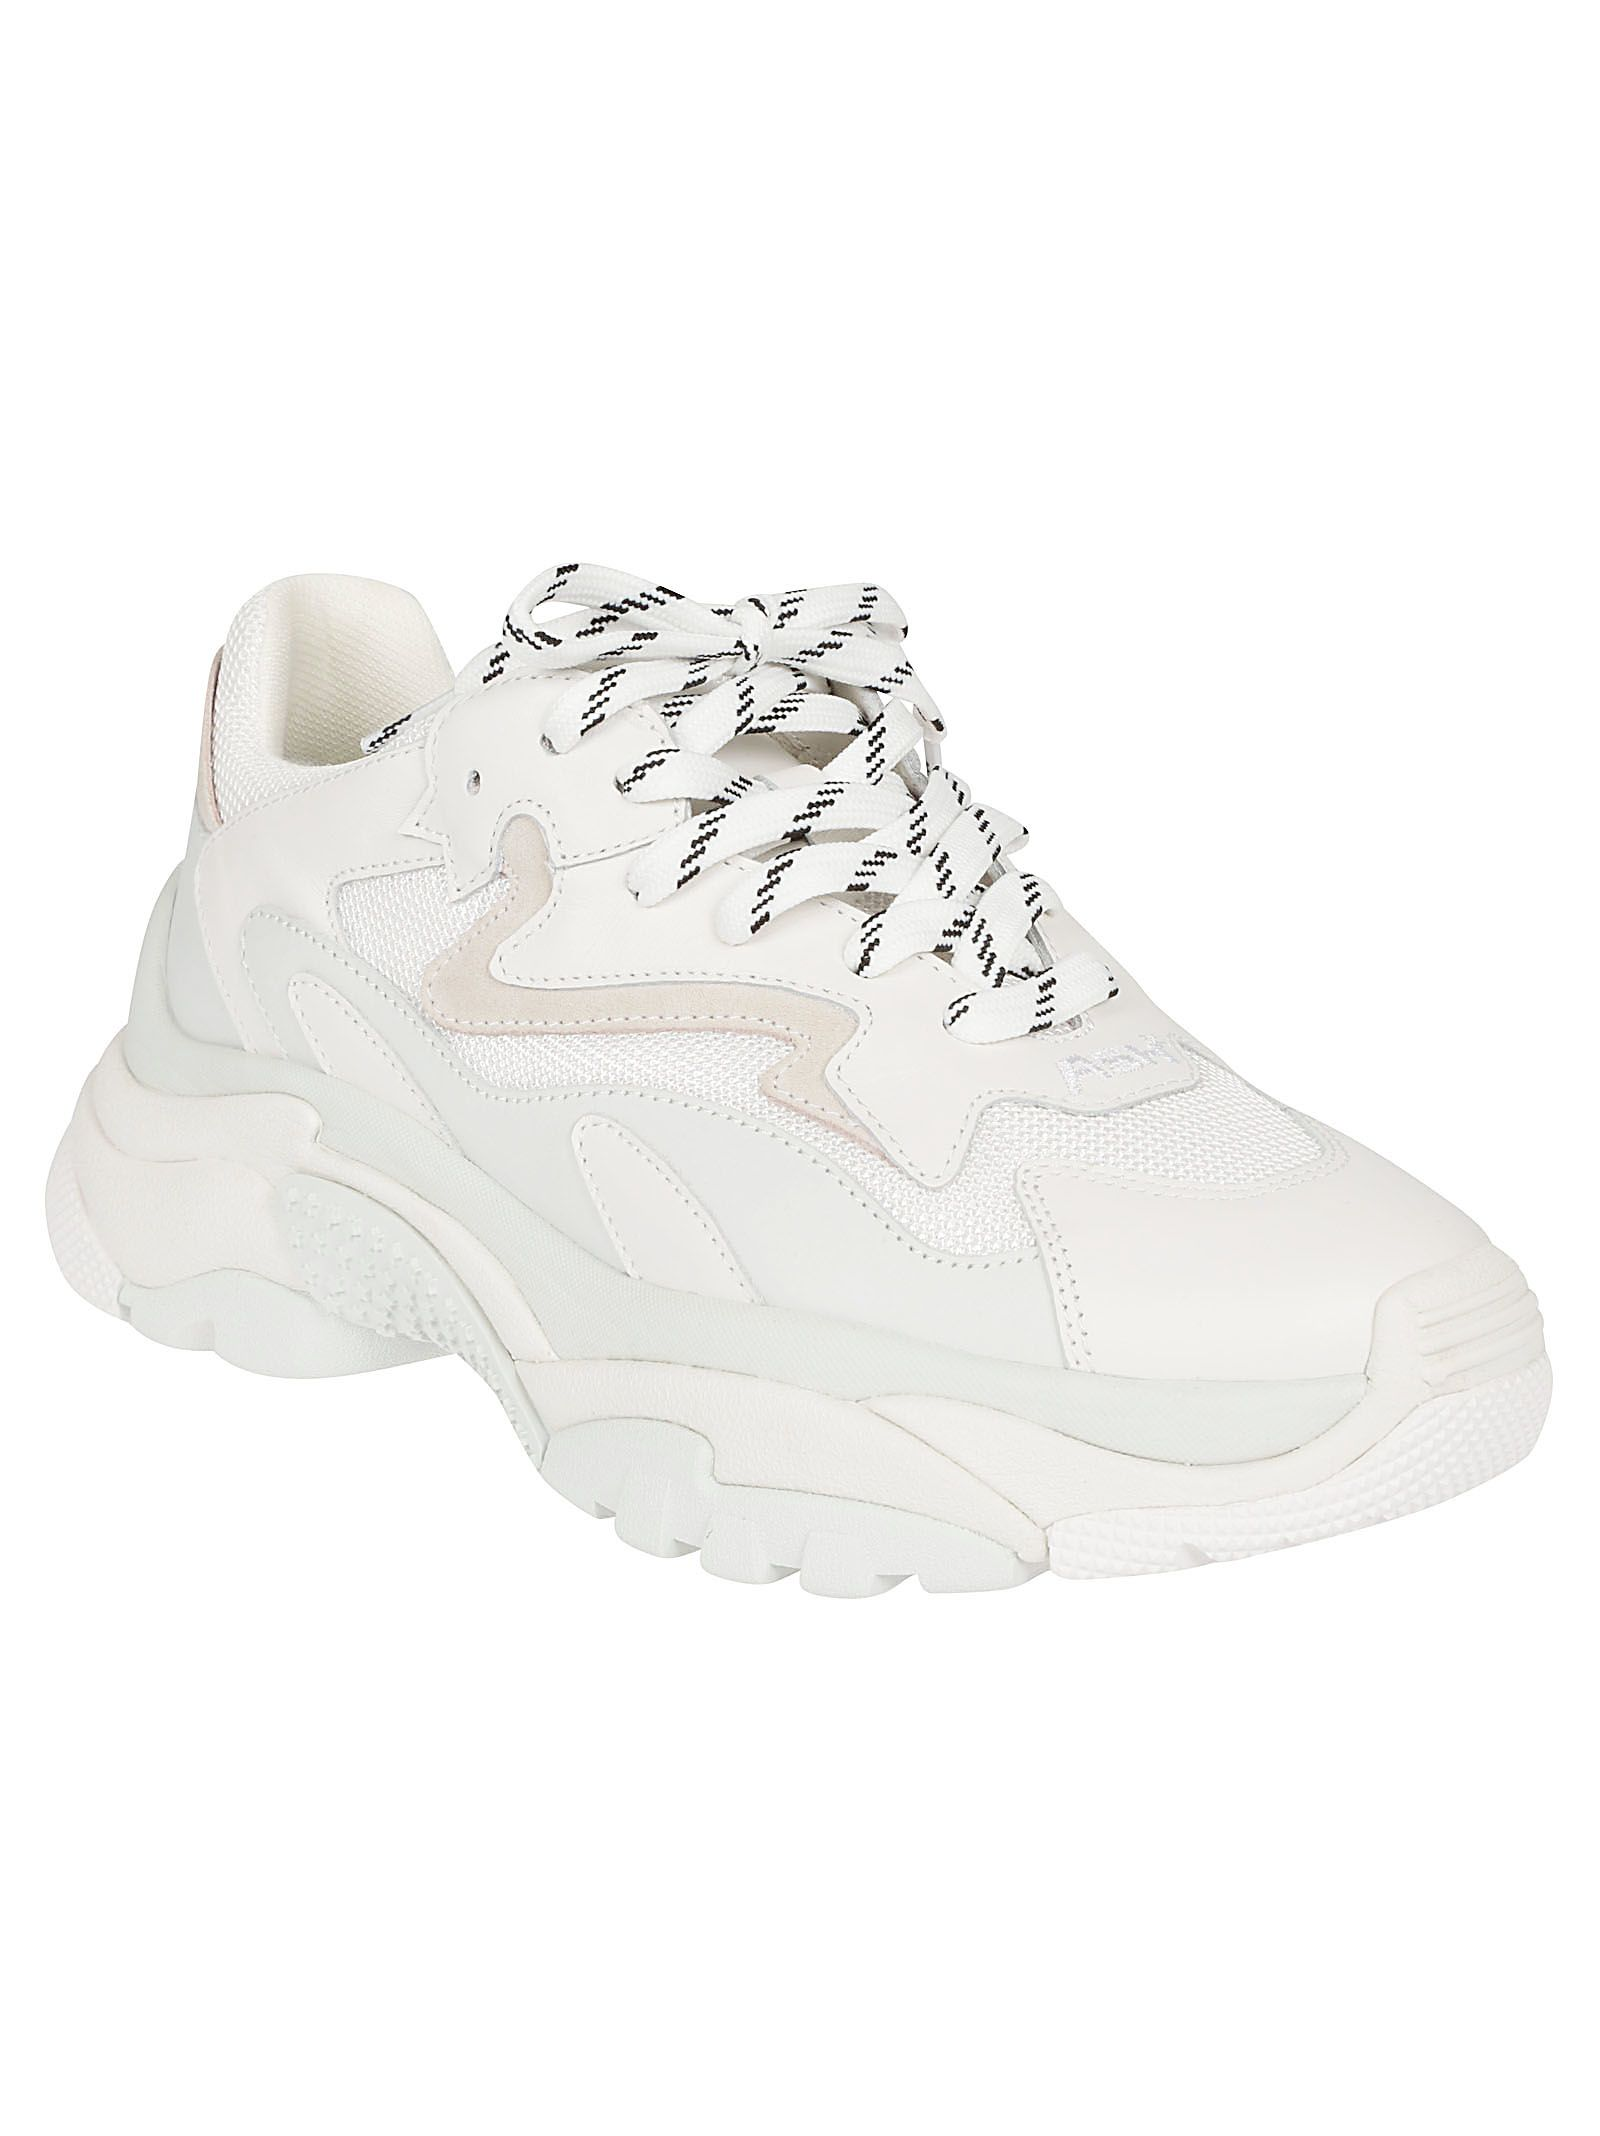 Ash ridged sole sneakers buy cheap best store to get cheap get authentic clearance reliable discount for sale cheap sale official TmKqi